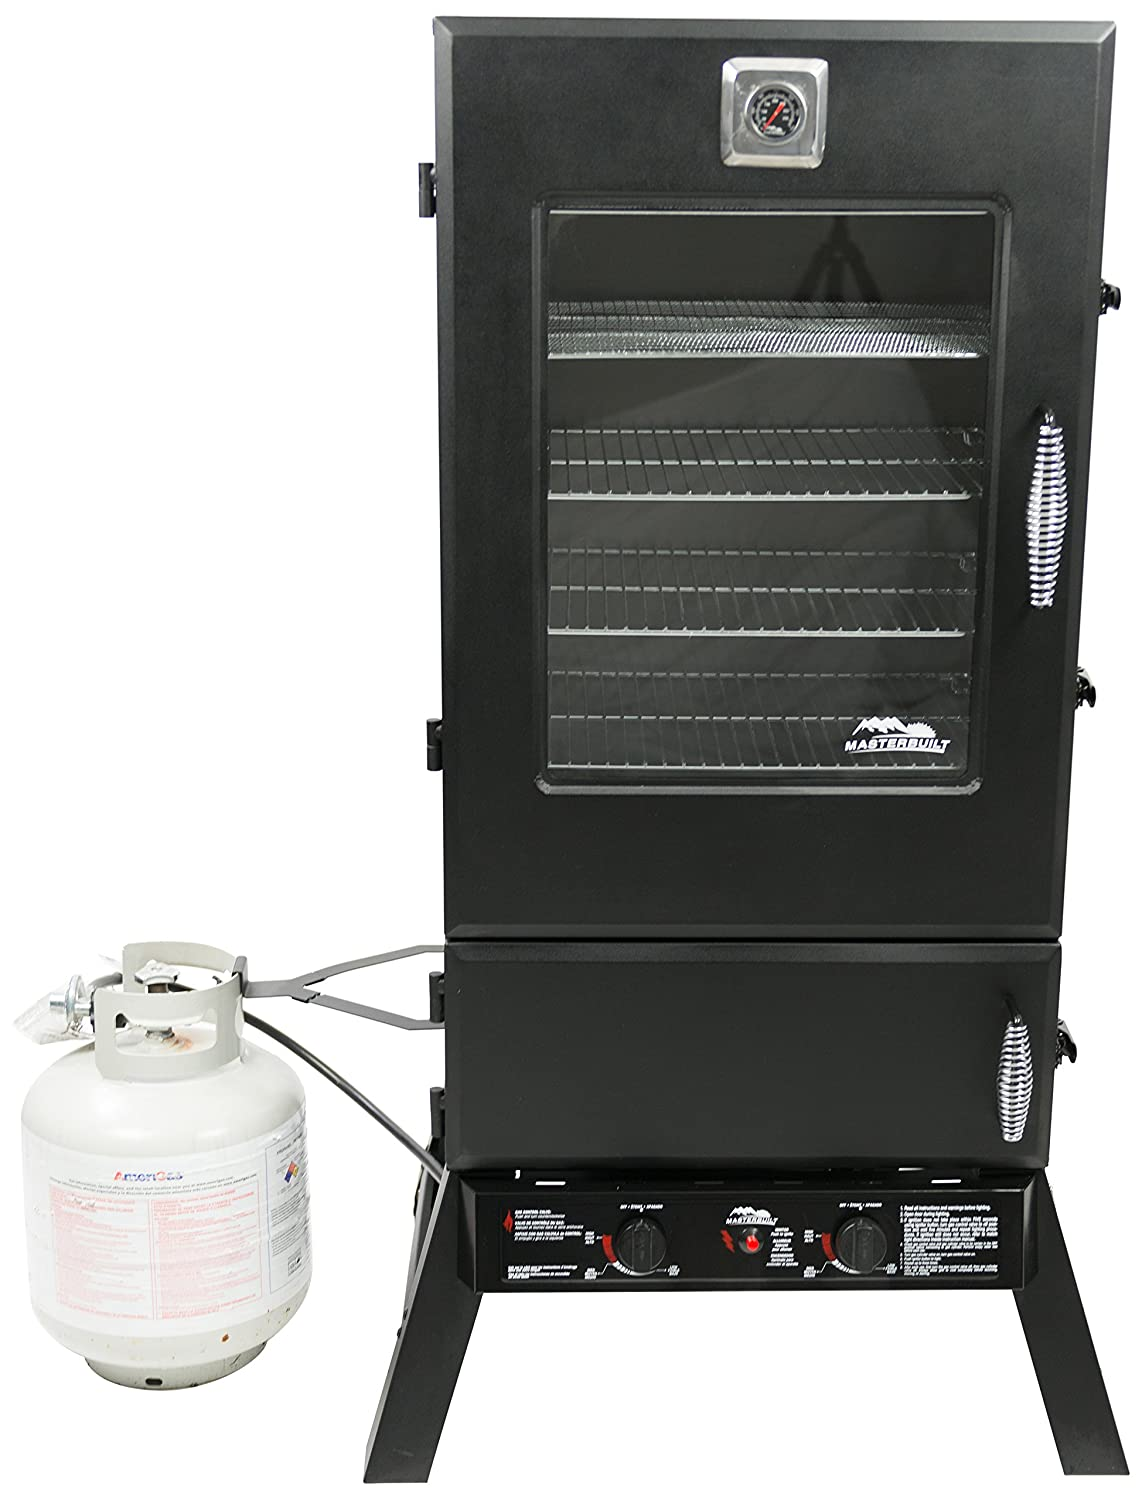 Beau Amazon.com : Masterbuilt 20050614 Propane Smoker, 44 Inch, Black : Garden U0026  Outdoor